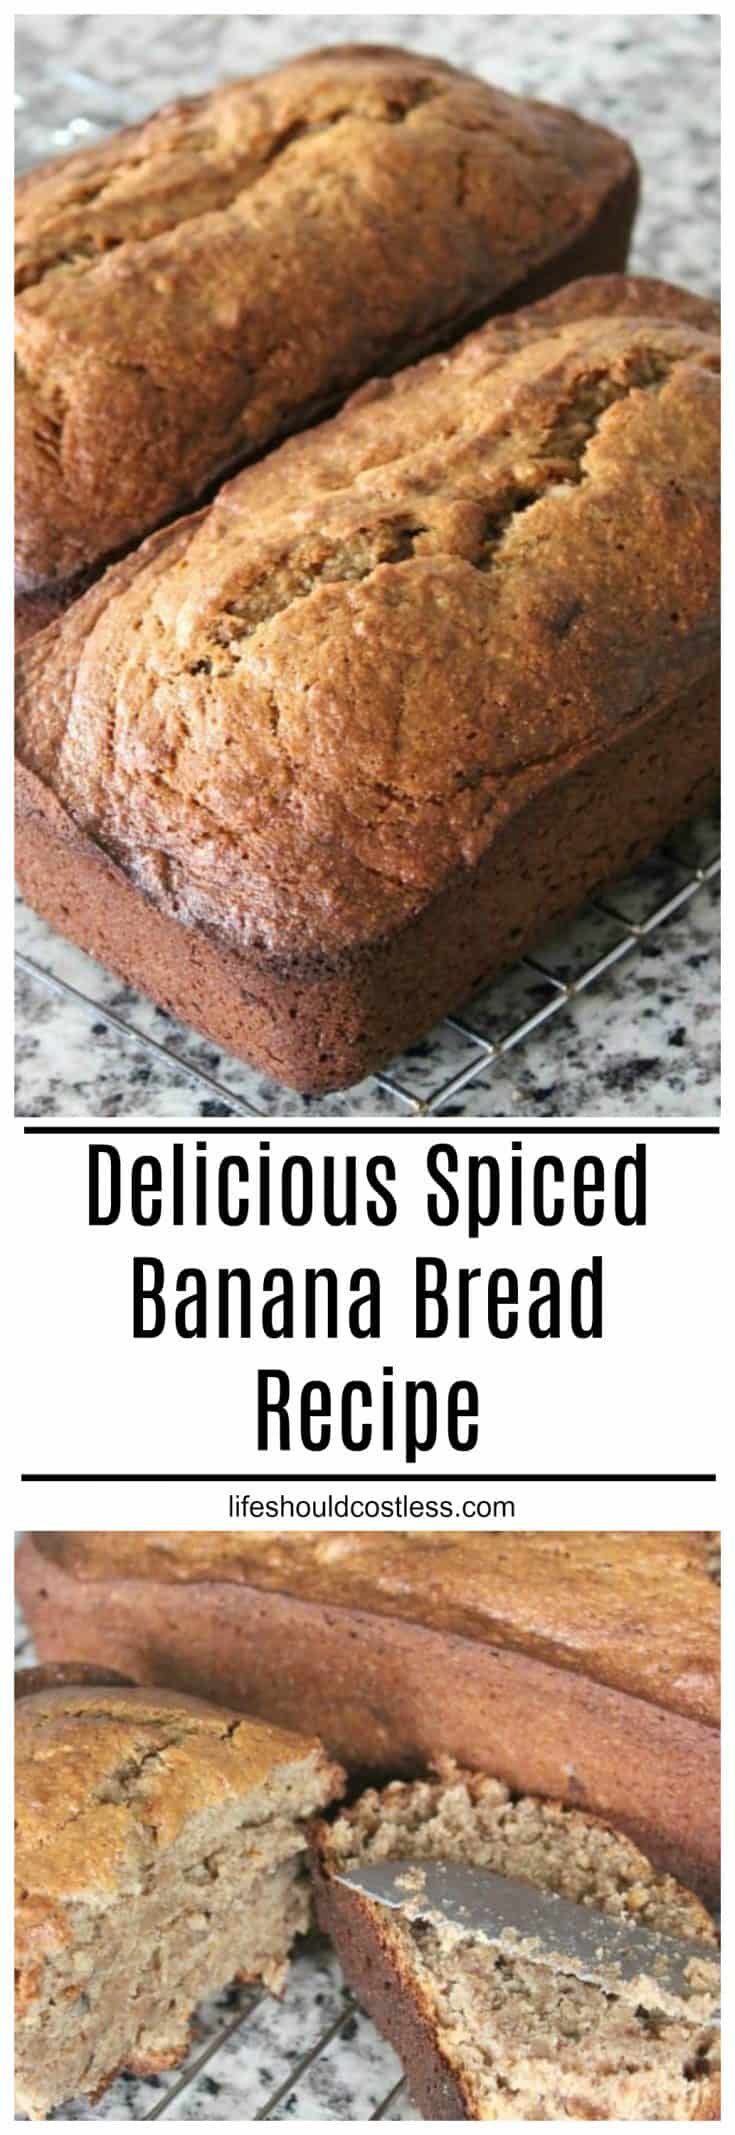 Delicious Spiced Banana Bread recipe with cinnamon and nutmeg! It's so tasty, it will most likely be gone before it even cools. lifeshouldcostless.com